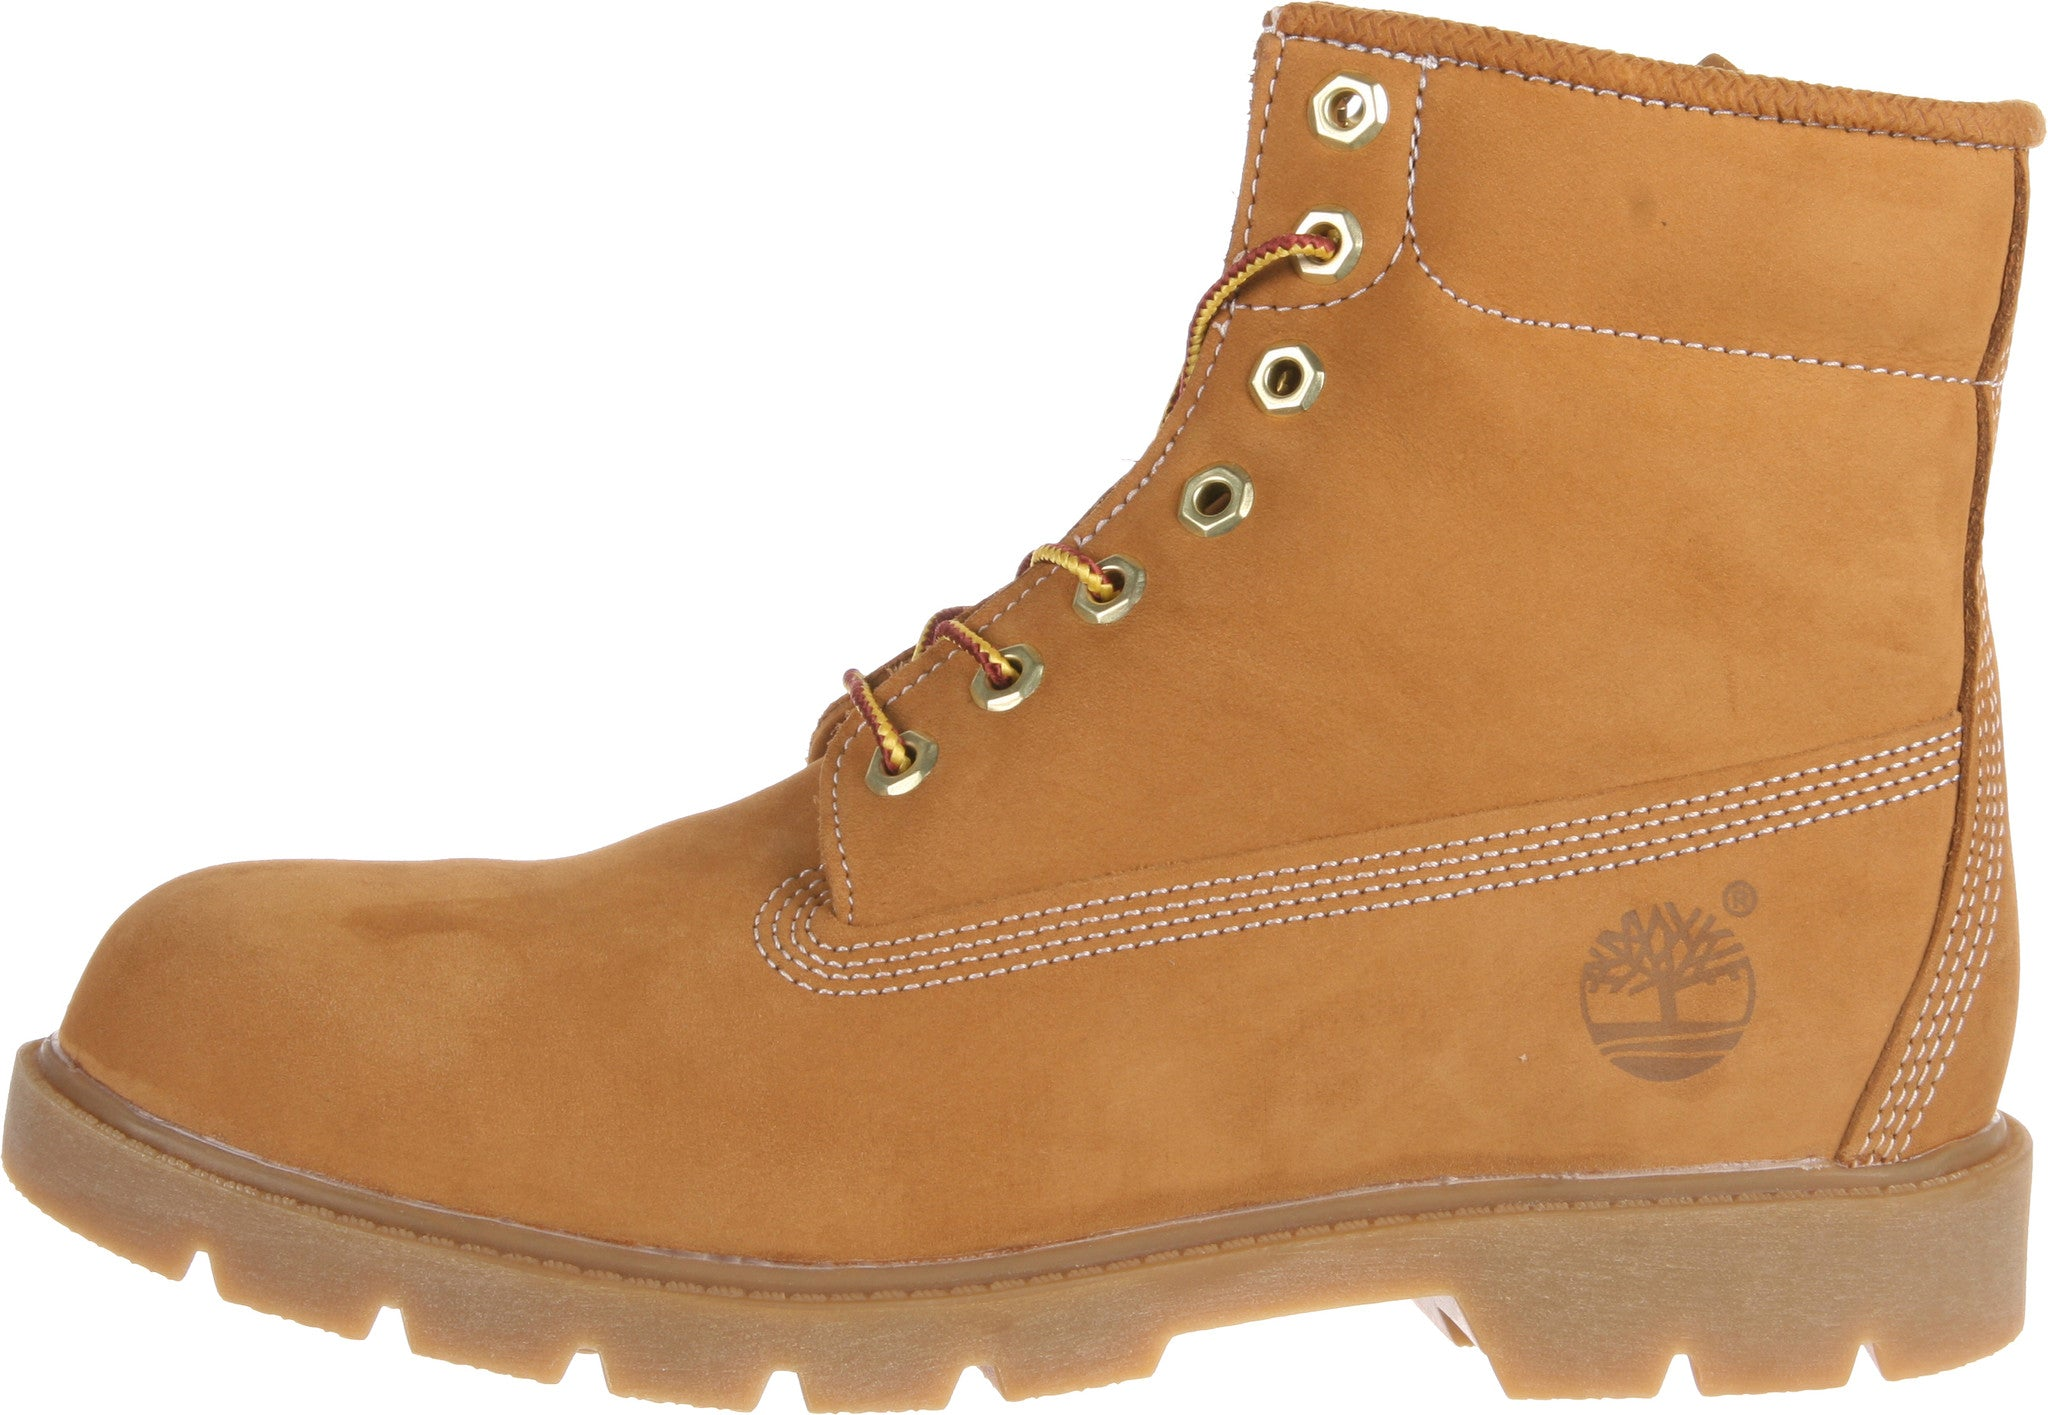 7317c3364a59c ... Timberland 6-Inch Basic Waterproof Mens Boots 10066 .